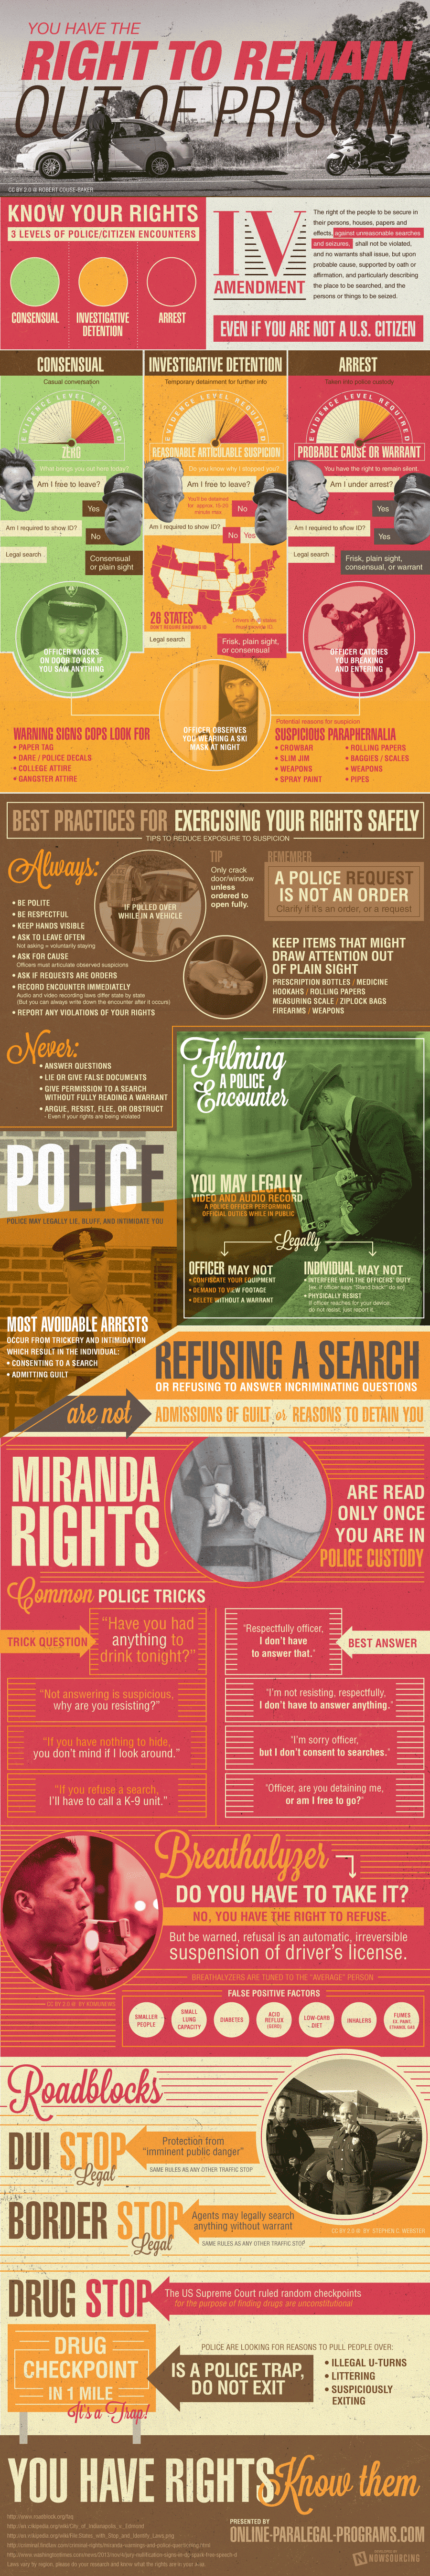 rights-infographic-online-paralegal-theblaze-copblock